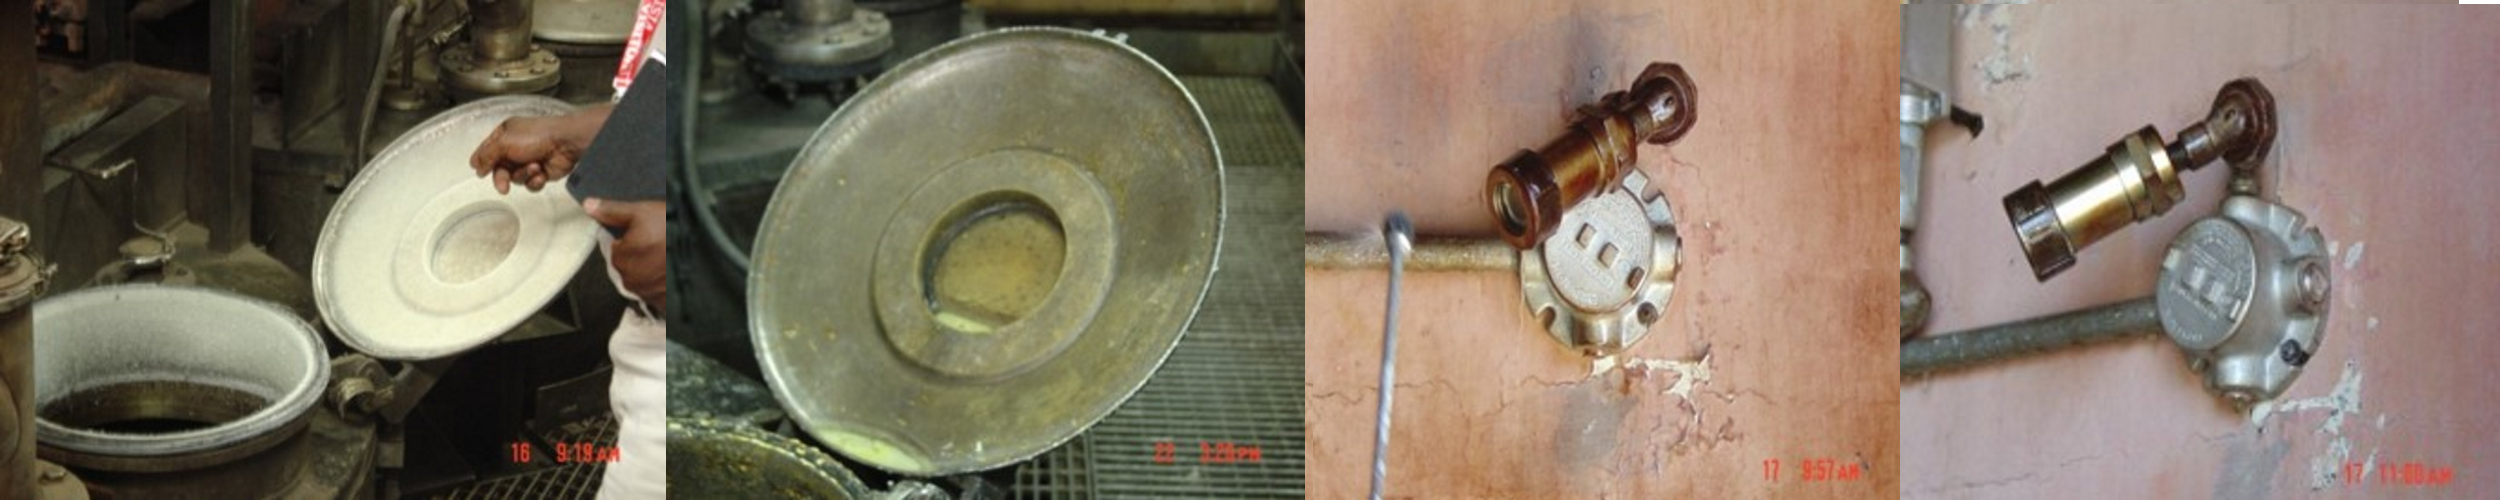 Before and after cleaning explosives contaminated equipment with MuniRem Reagent